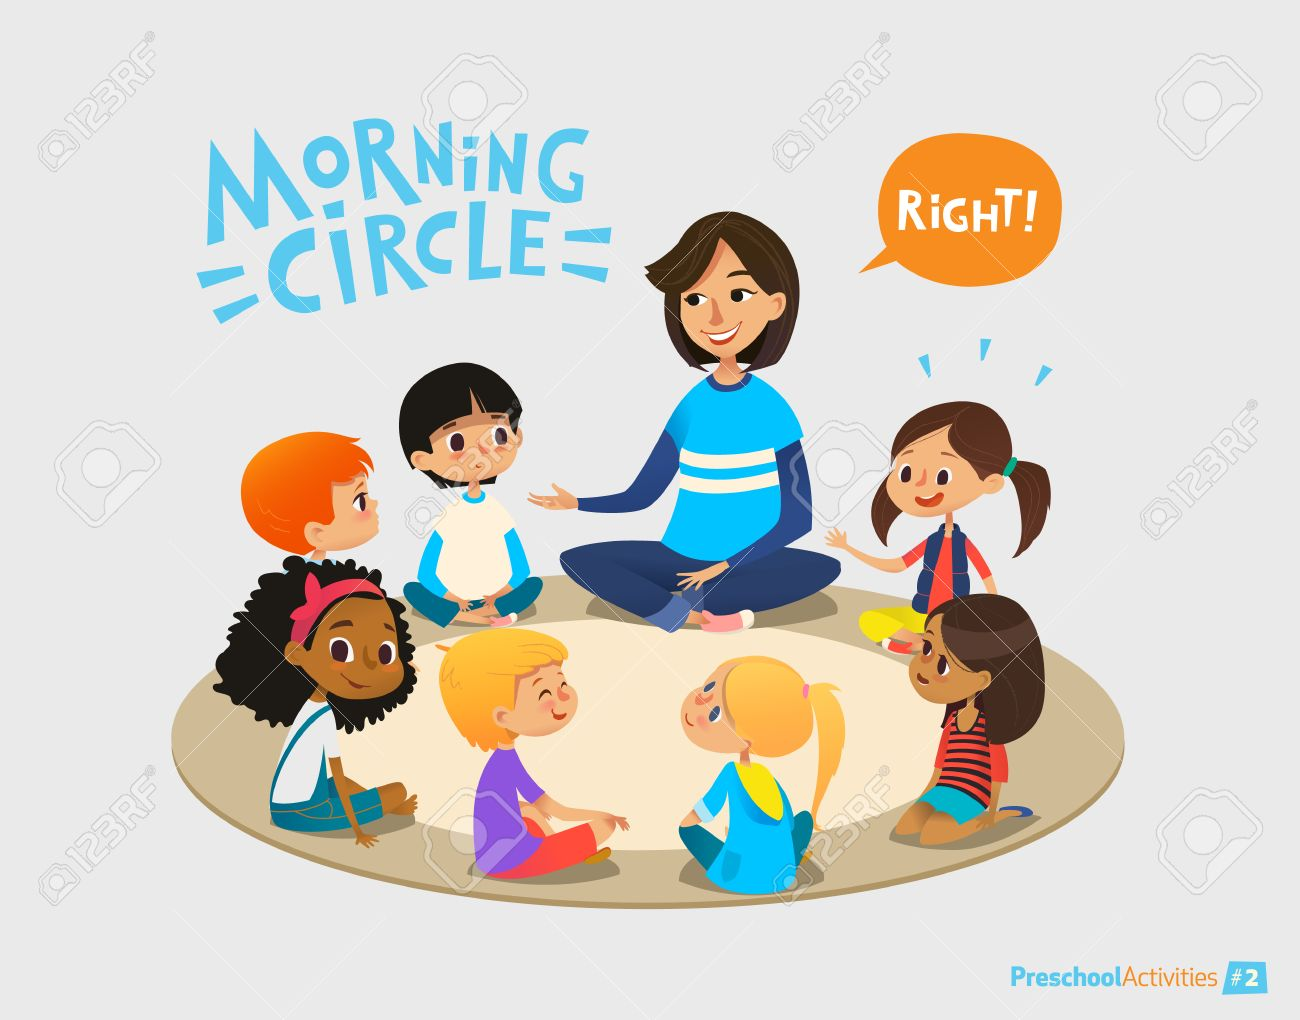 Smiling kindergarten teacher talks to children sitting in circle and asks them questions. Preschool activities and early childhood education concept. Vector illustration for poster, website banner. - 69422951